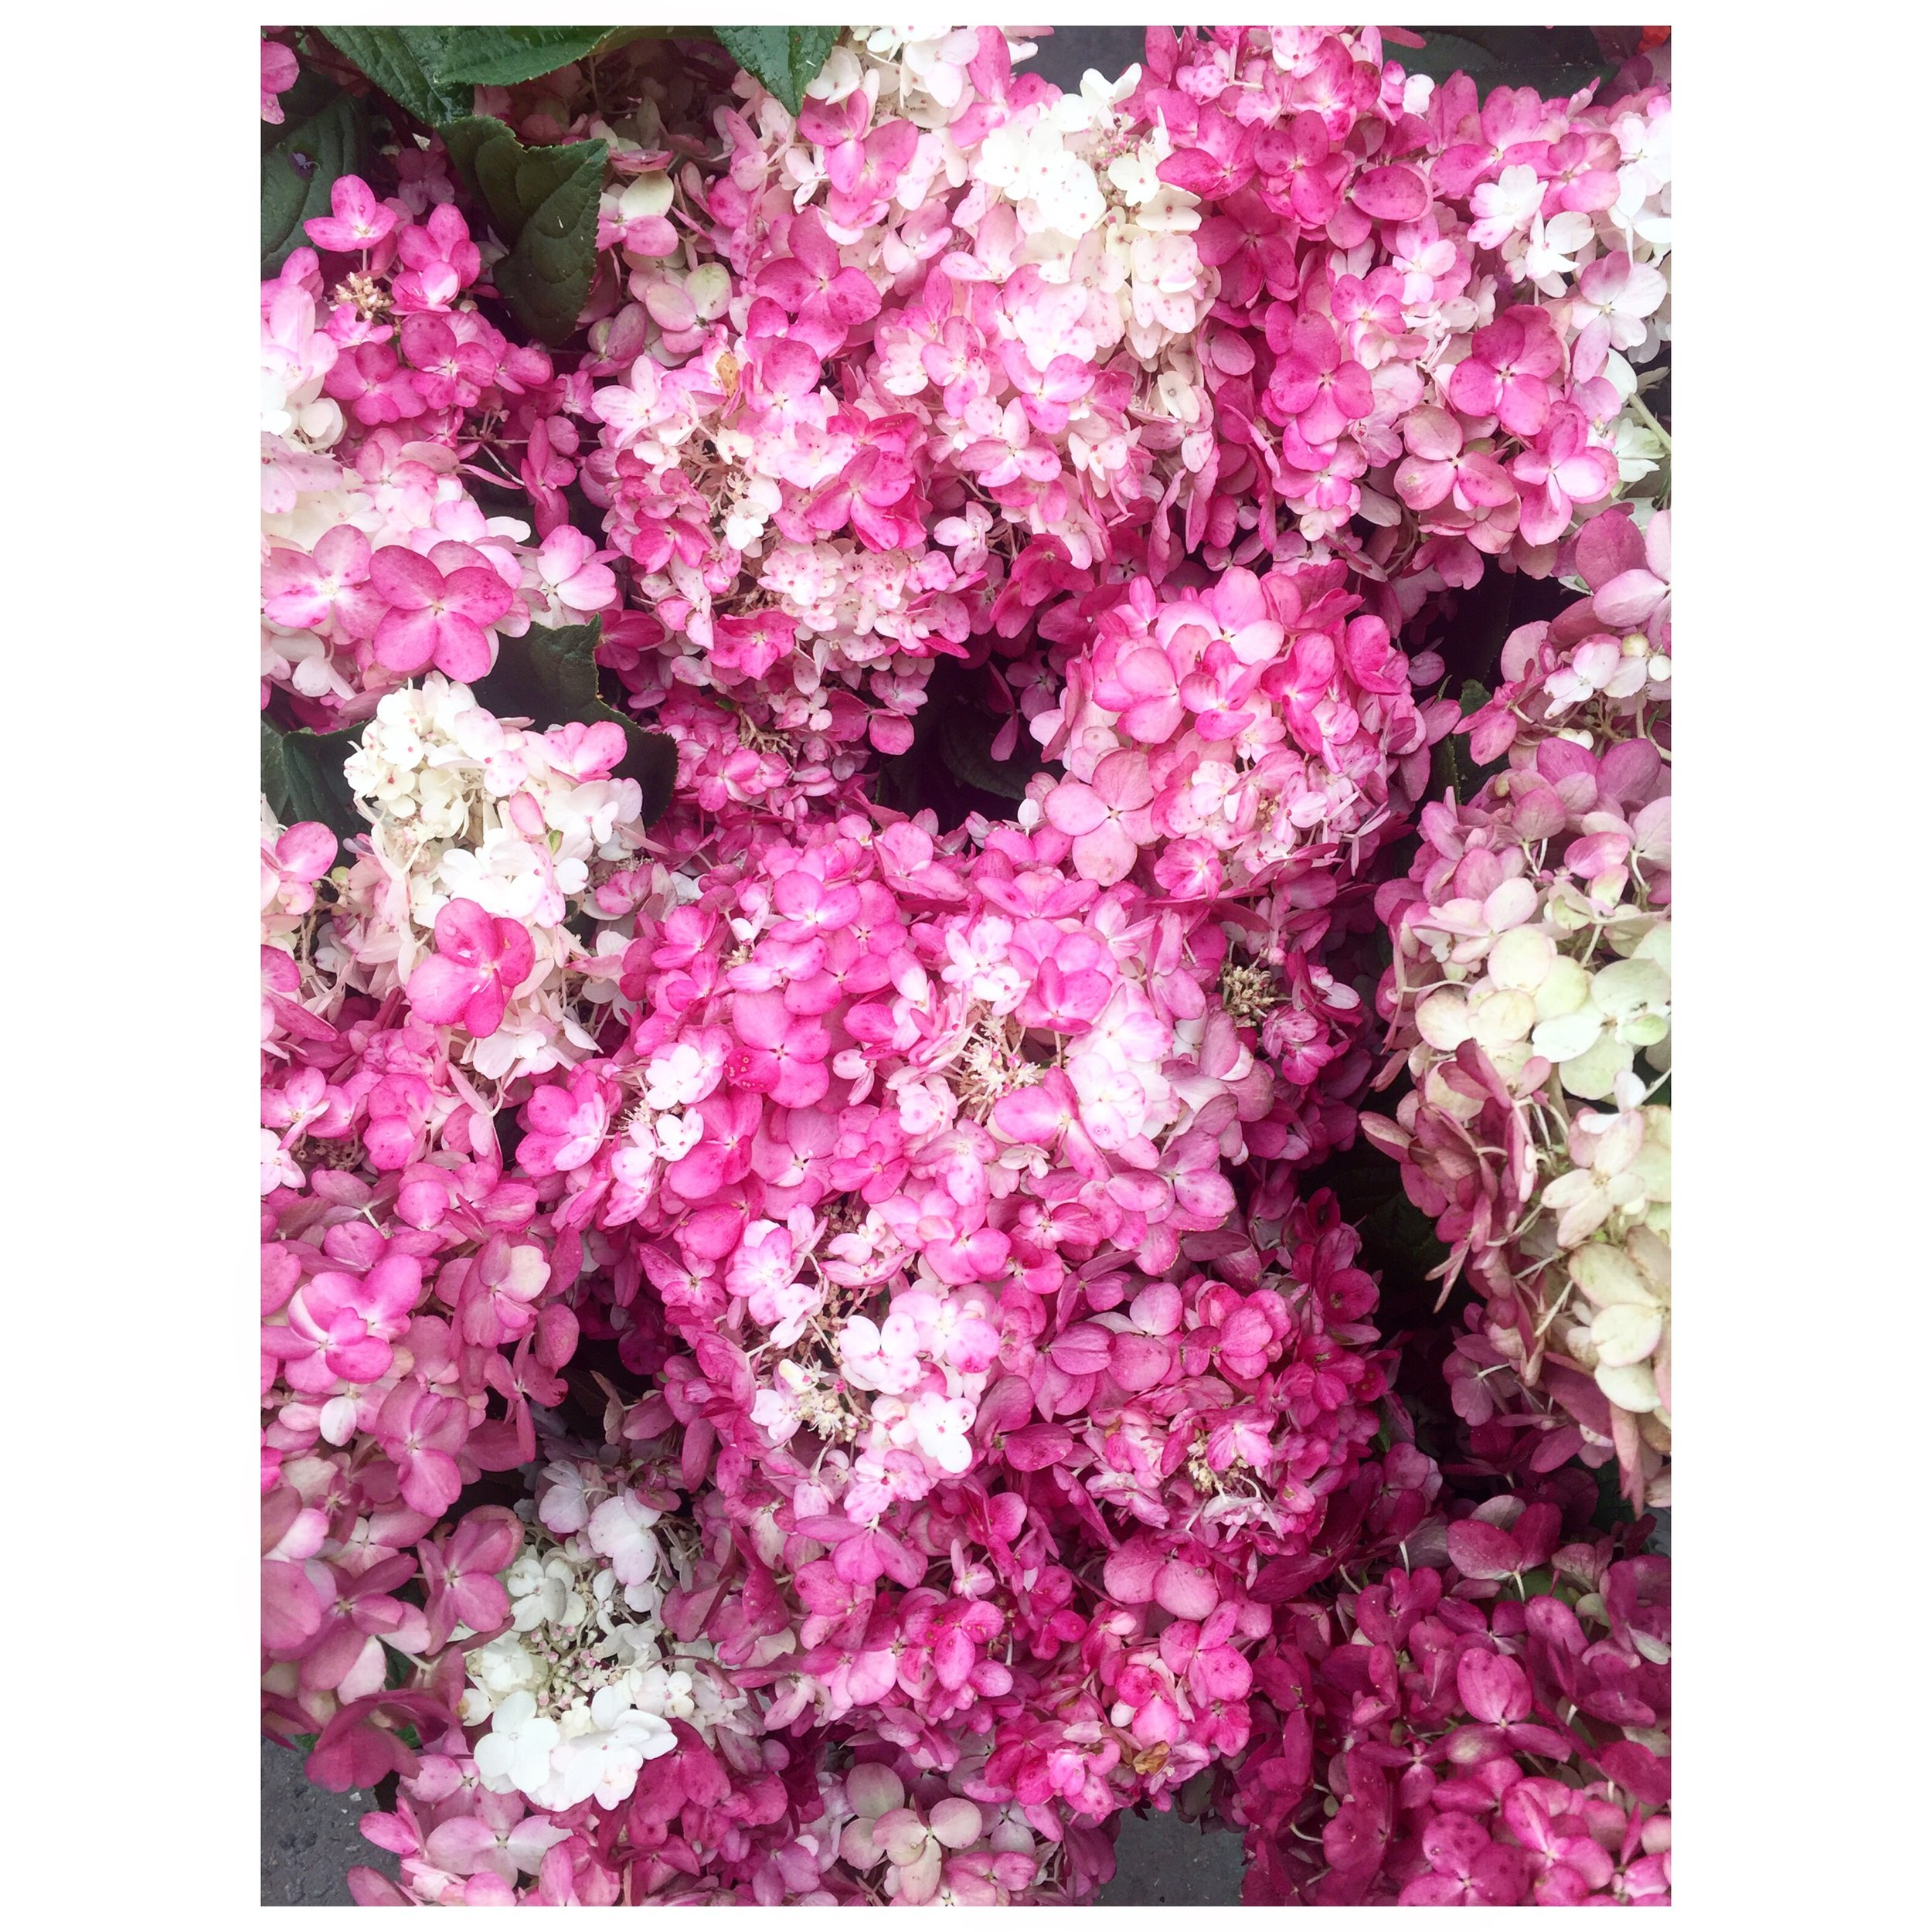 Hydrangeas at the Flower Market - that color!